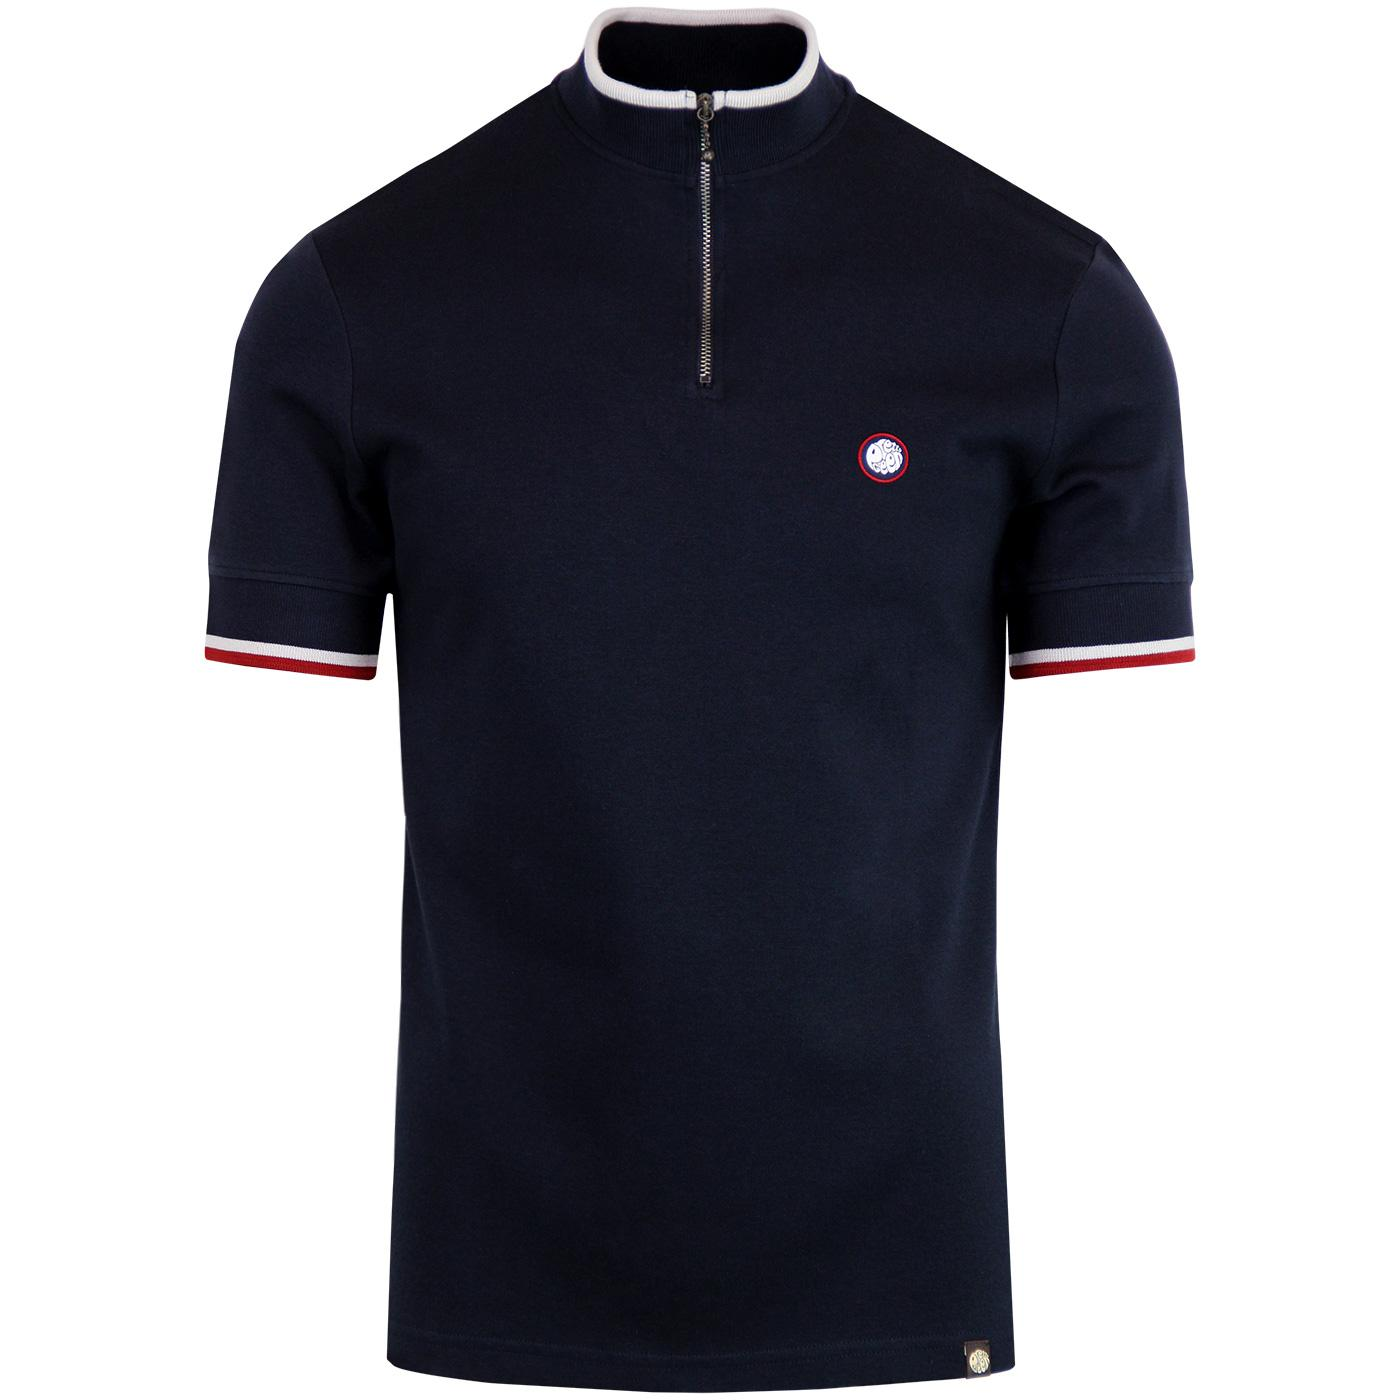 PRETTY GREEN Retro Mod Zip Neck Cycling Top (Navy)